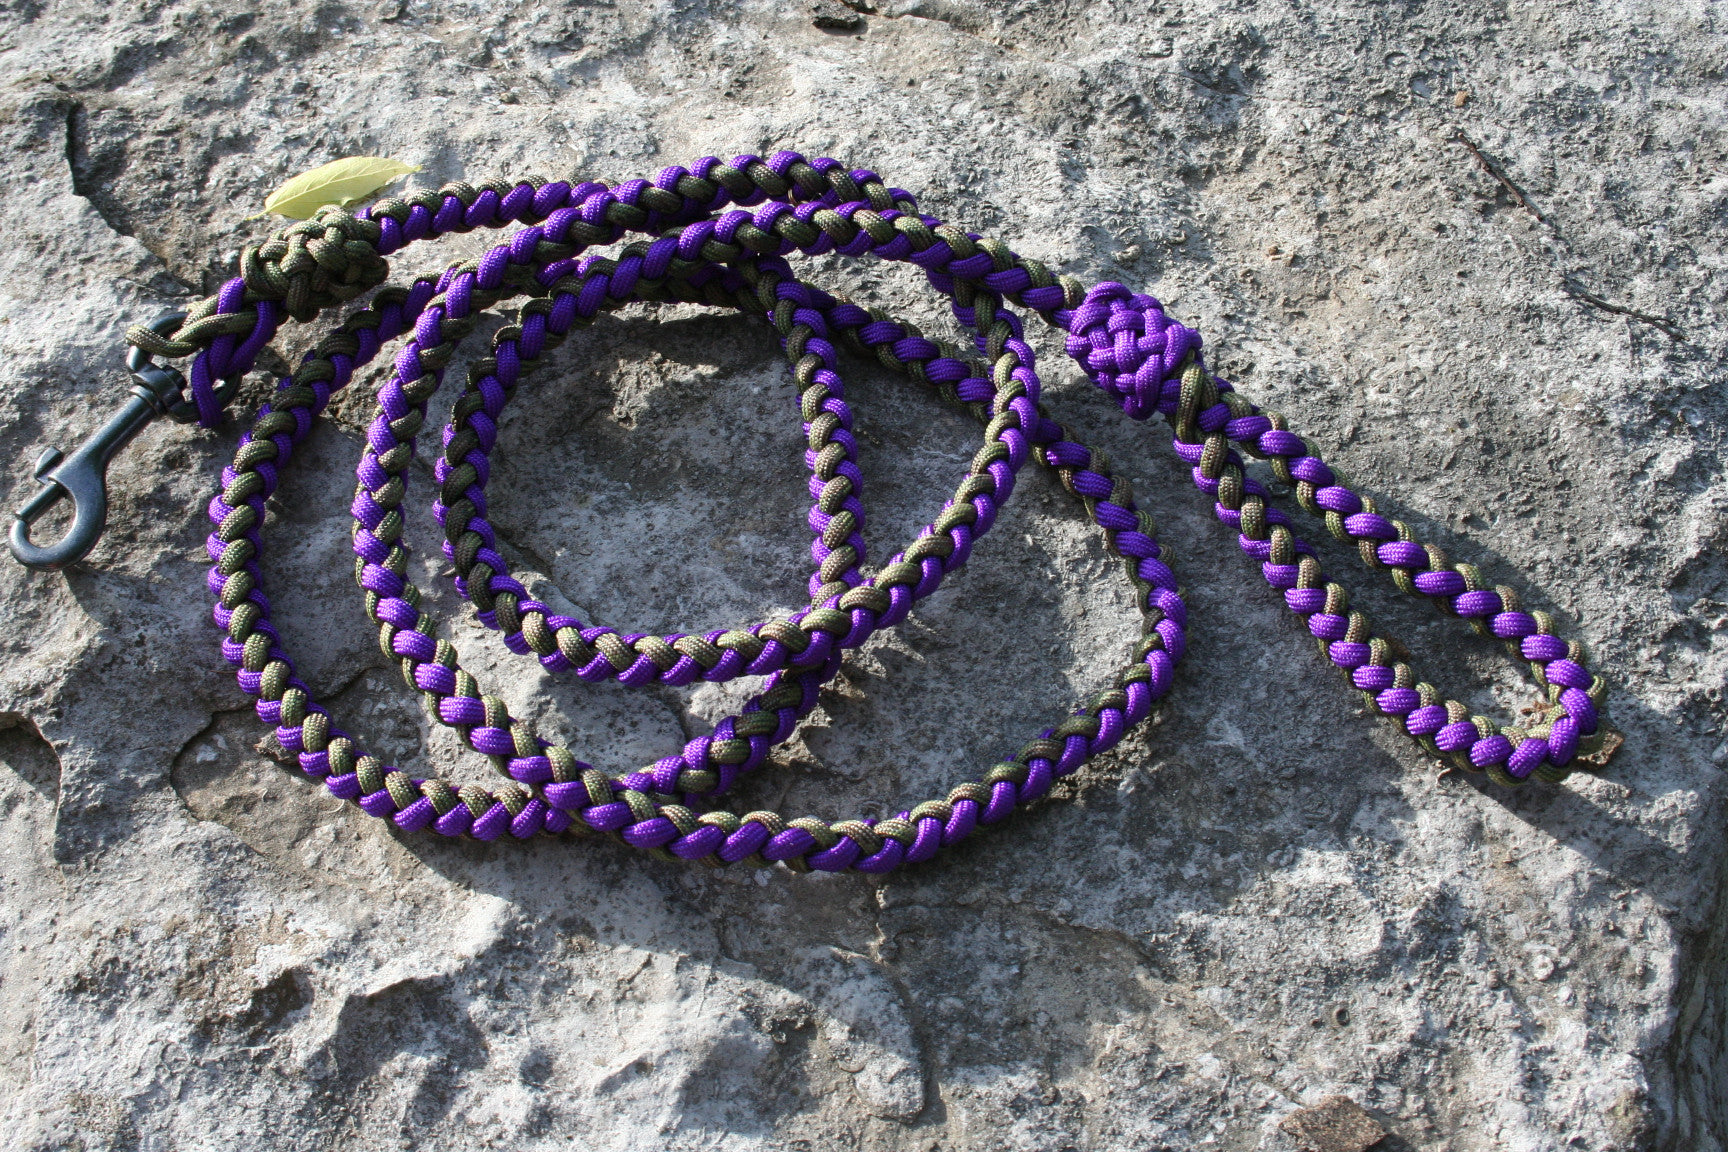 6 Foot Paracord Dog Leash Made in USA